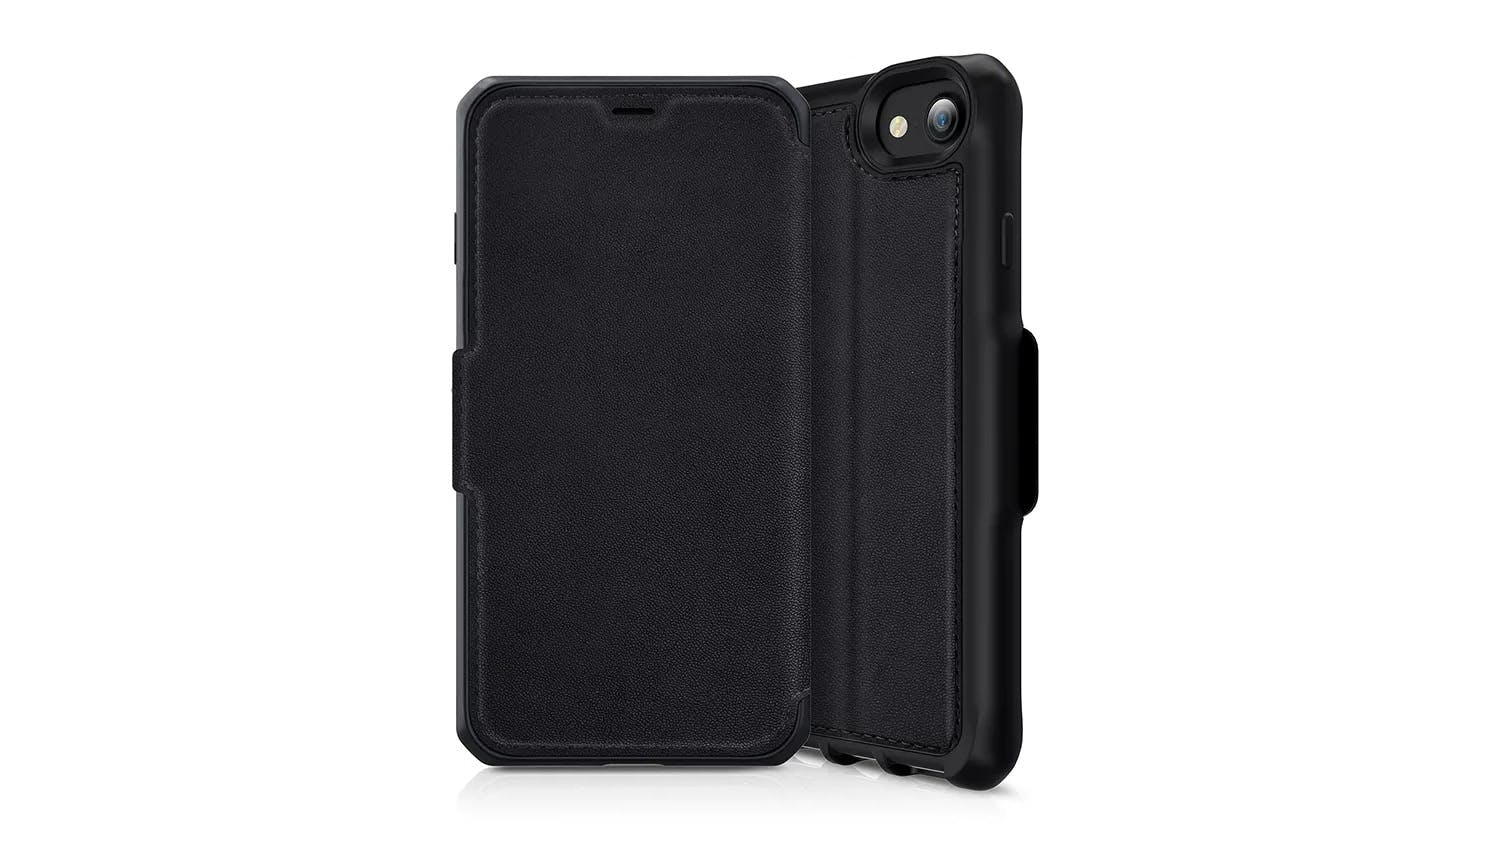 ITSKINS Hybrid Folio Case for iPhone SE (2nd Gen), 7/8 - Black